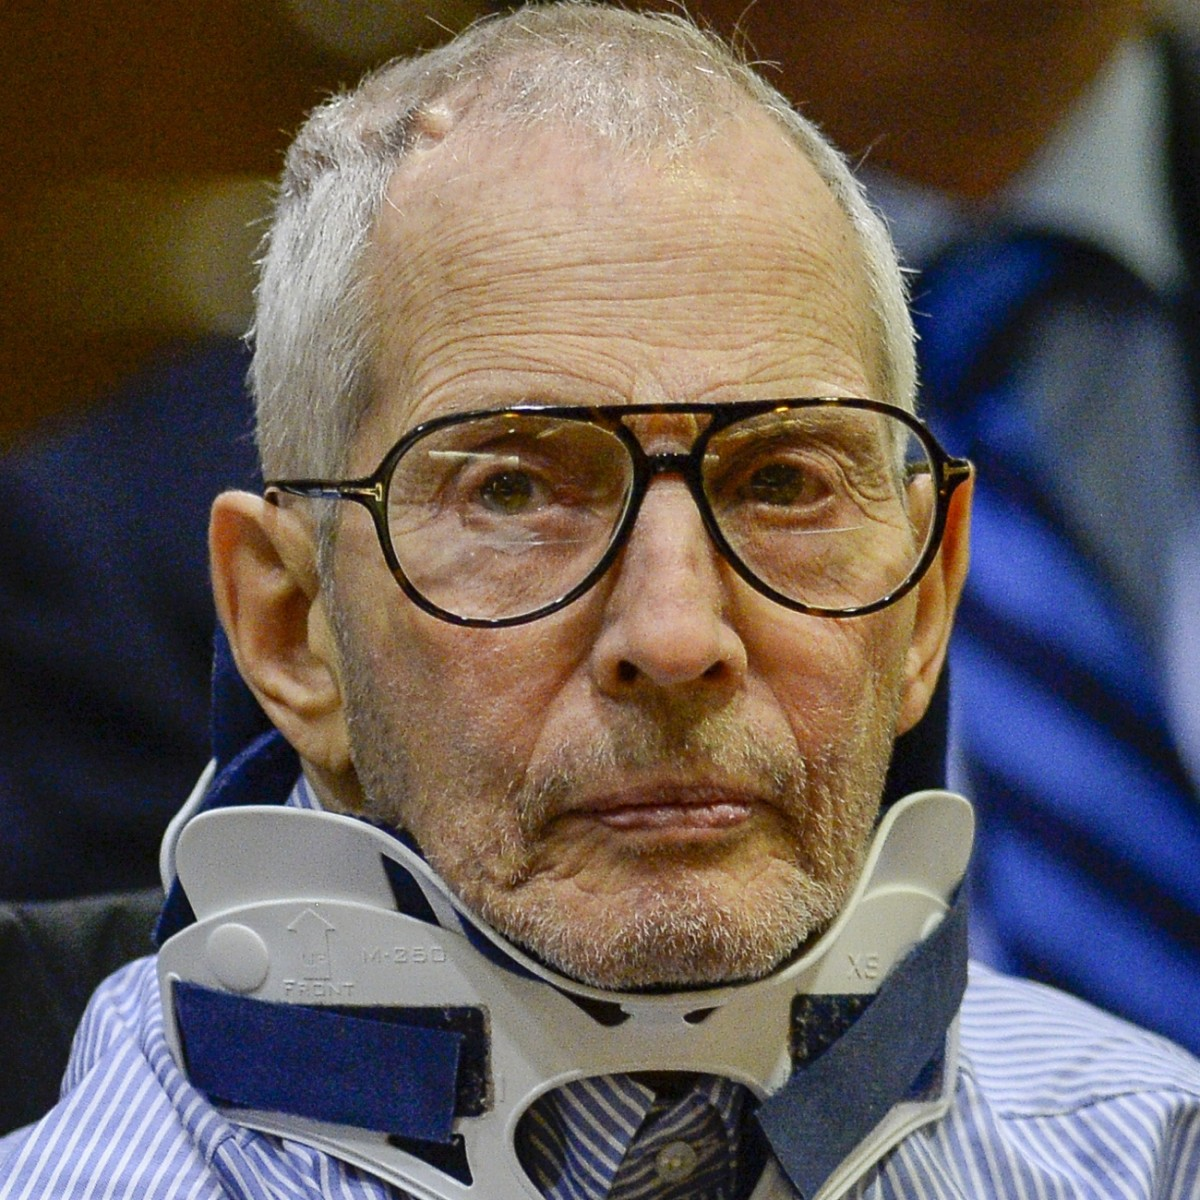 Robert Durst photo via Getty Images